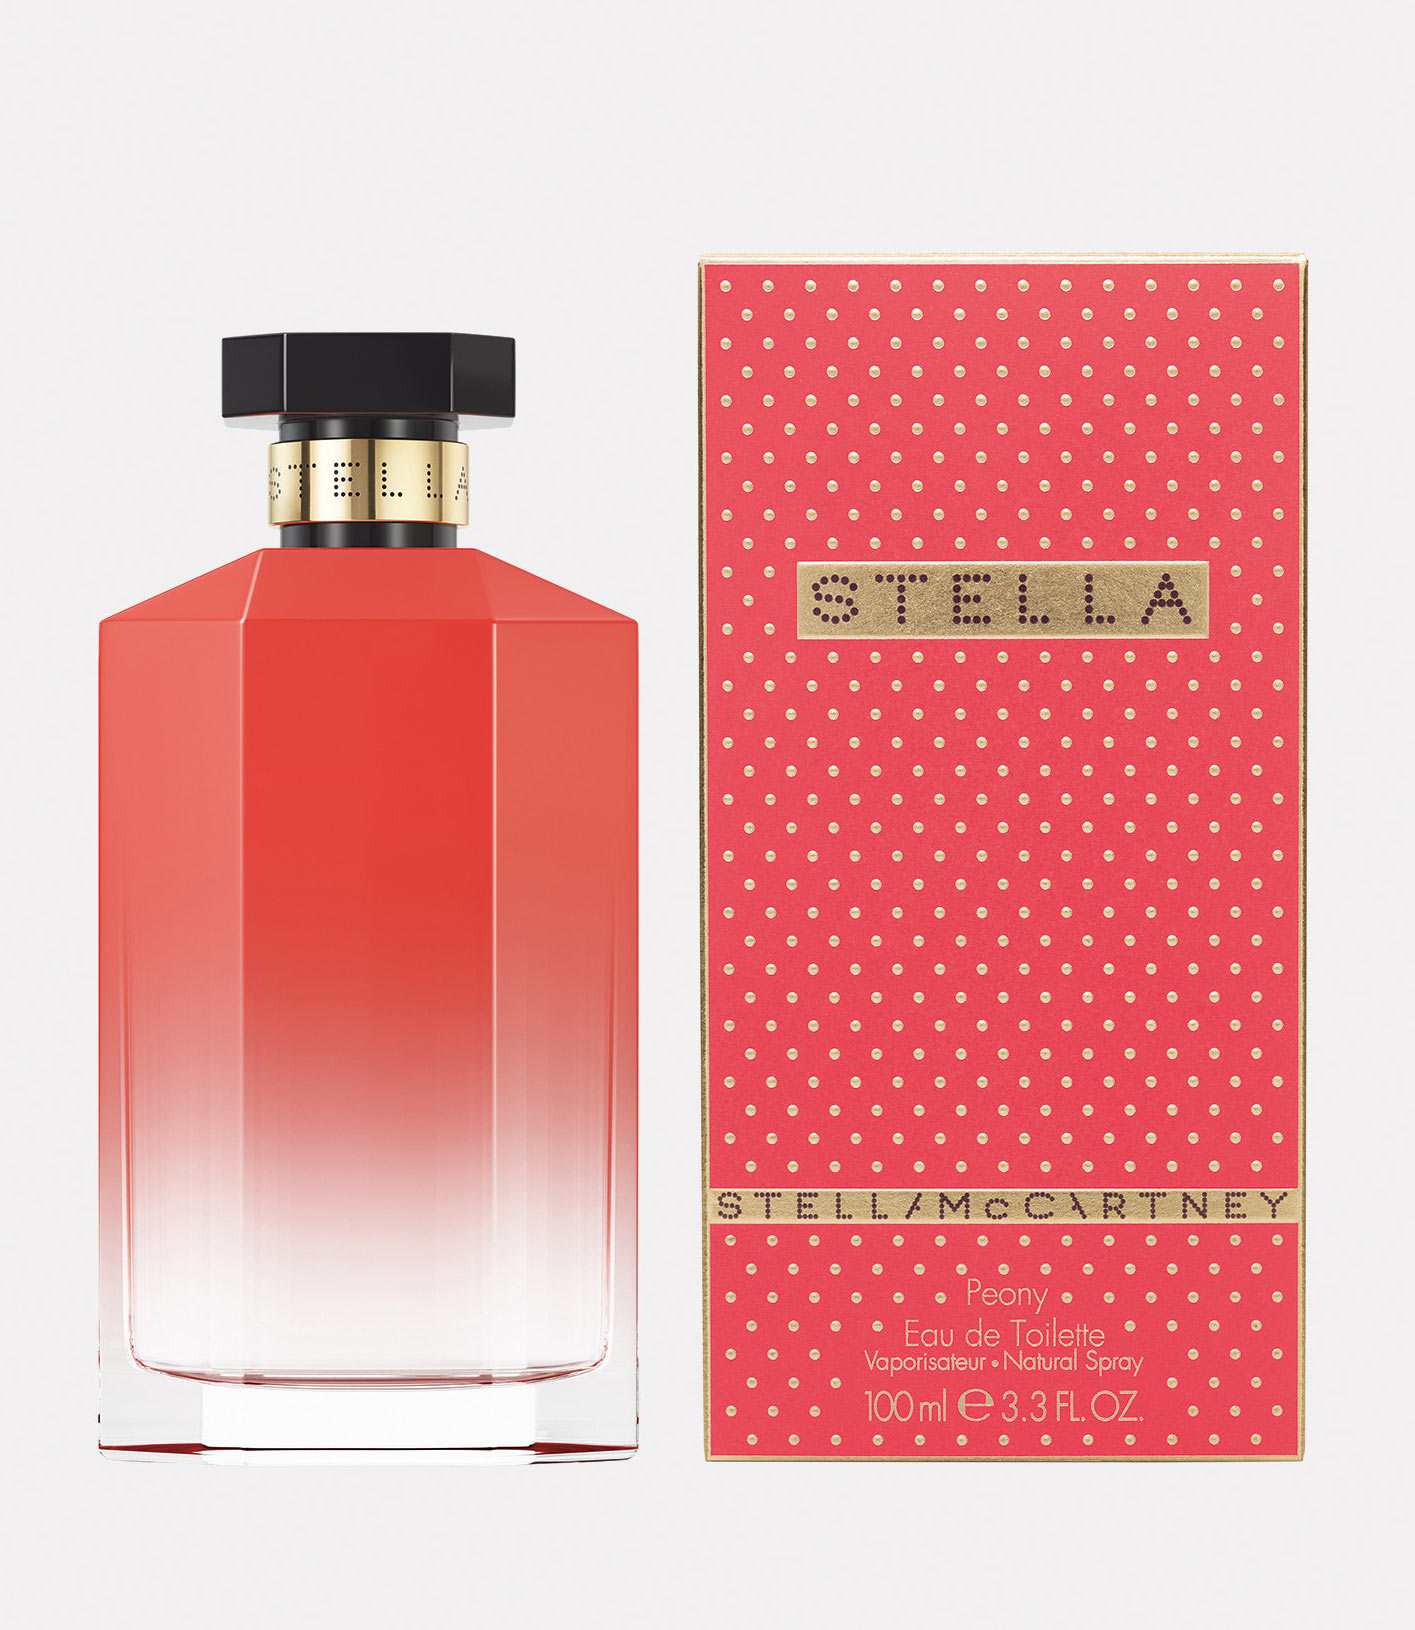 Stella Peony Mccartney Perfume A New Fragrance For Women 2017 Kenzo Flower Woman Edt 100 Ml Original Free Vial Pictures